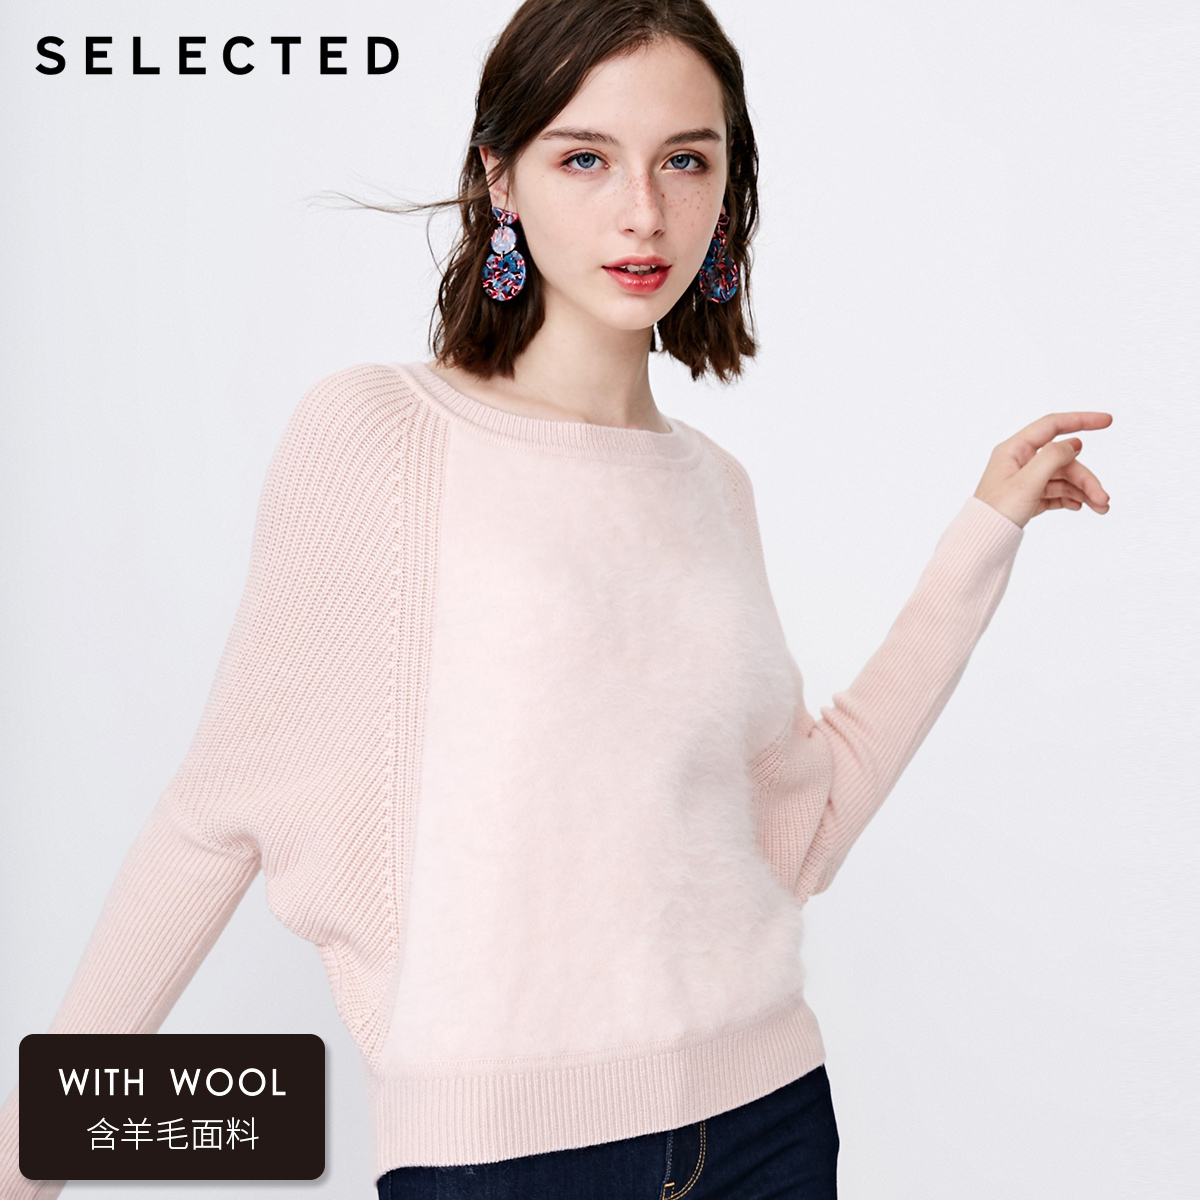 SELECTED New Woman Wool Stitching Bat Sleeve Knitted Sweater S 418425506